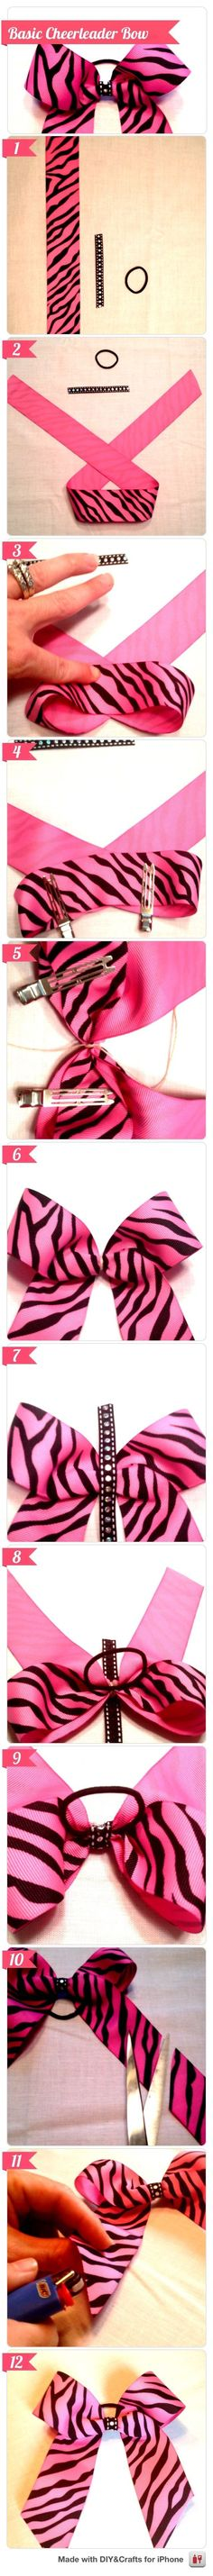 This shows how to do a cheer bow... But may work for crafts too w/o the hair tie: